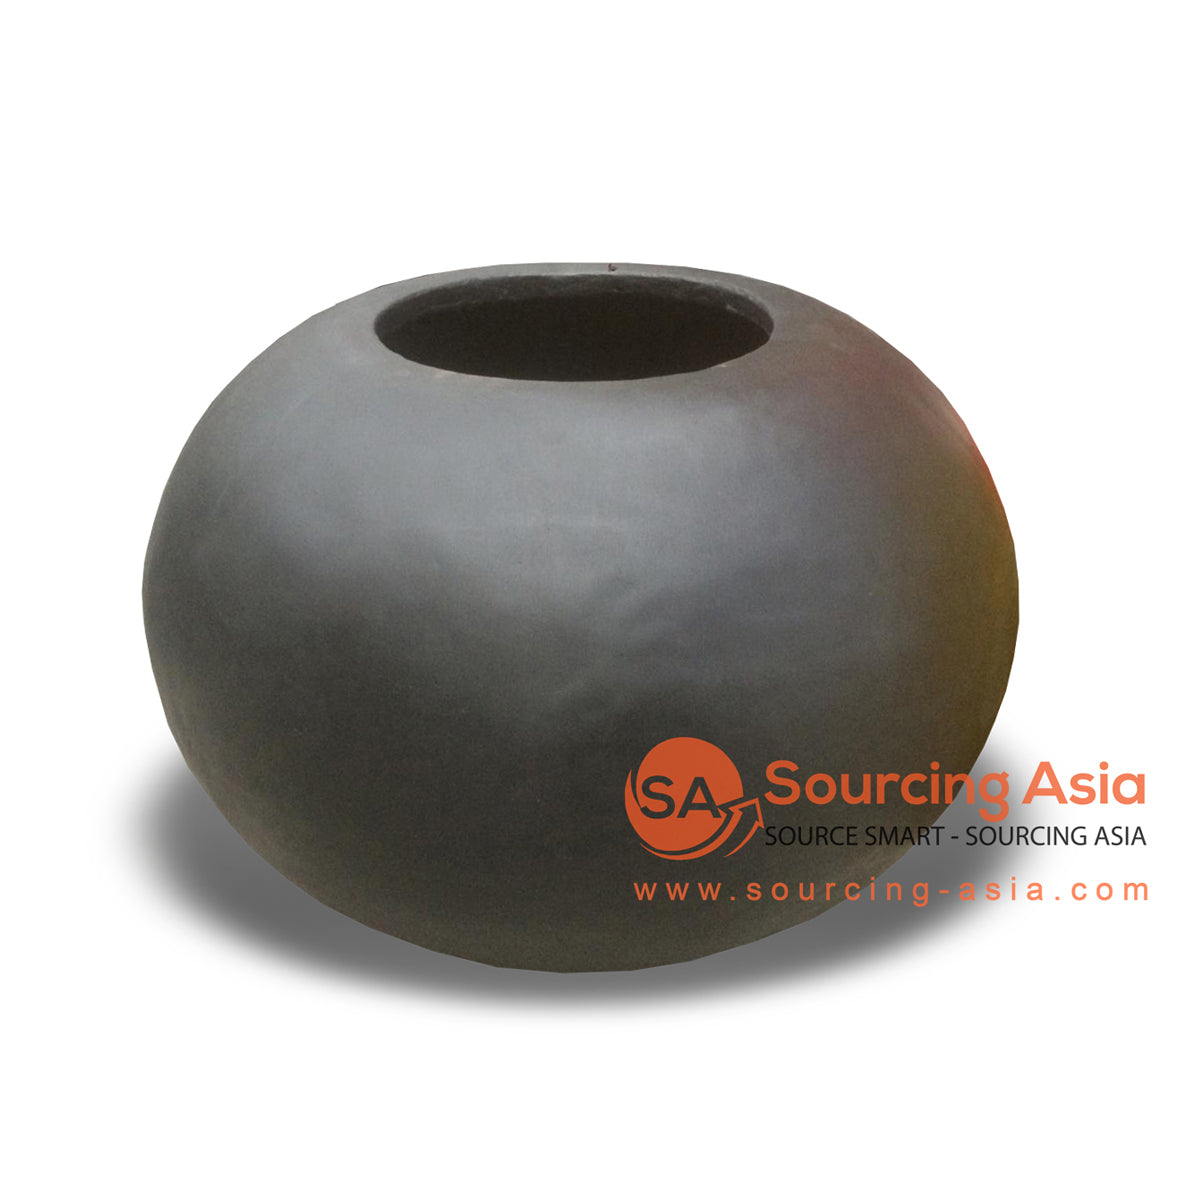 JNP291-BDOP TERRACOTTA BLACK BOWL VASE